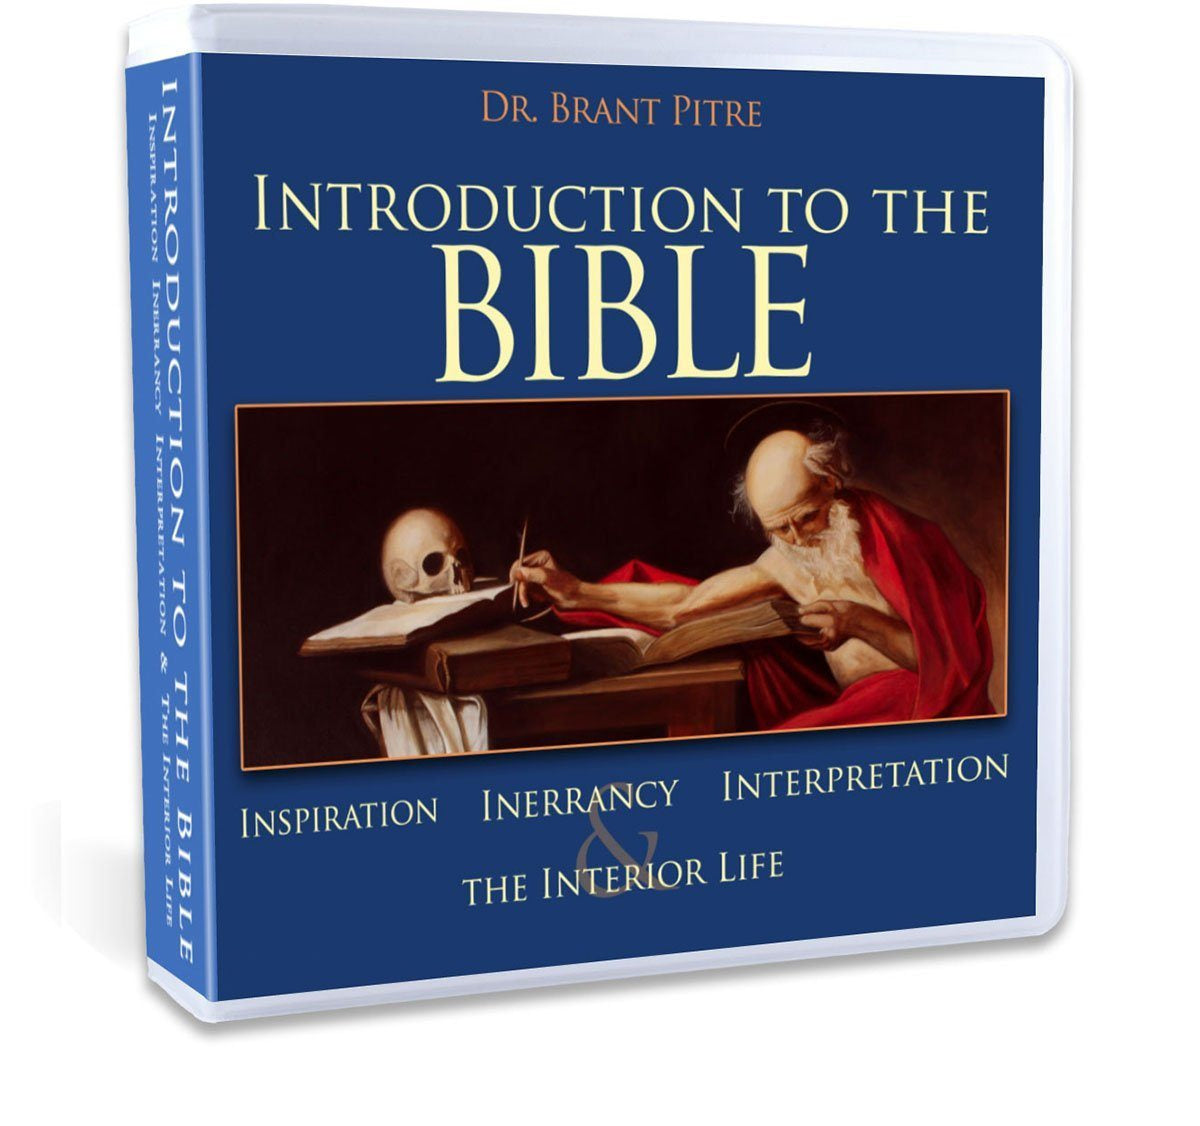 Introduction to the Bible: Inspiration, Inerrancy, Interpretation, and the  Interior Life